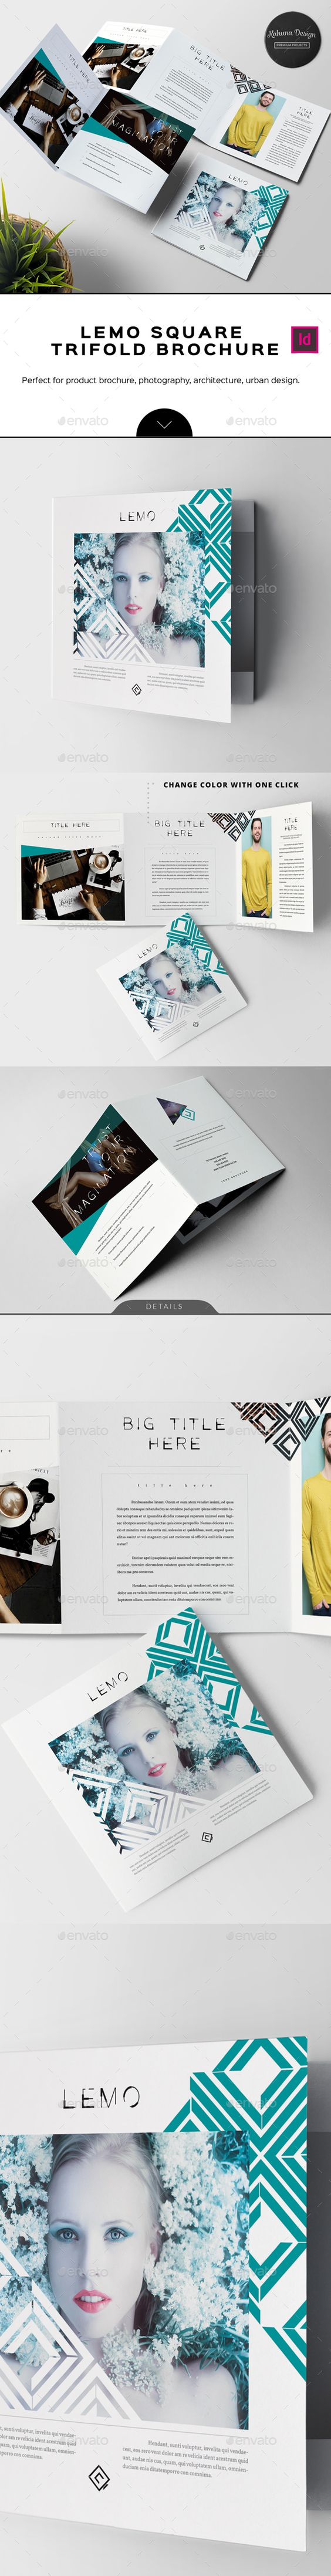 Lemo Square Trifold Brochure Template InDesign INDD. Download here: https://graphicriver.net/item/lemo-square-trifold-brochure/17641466?ref=ksioks